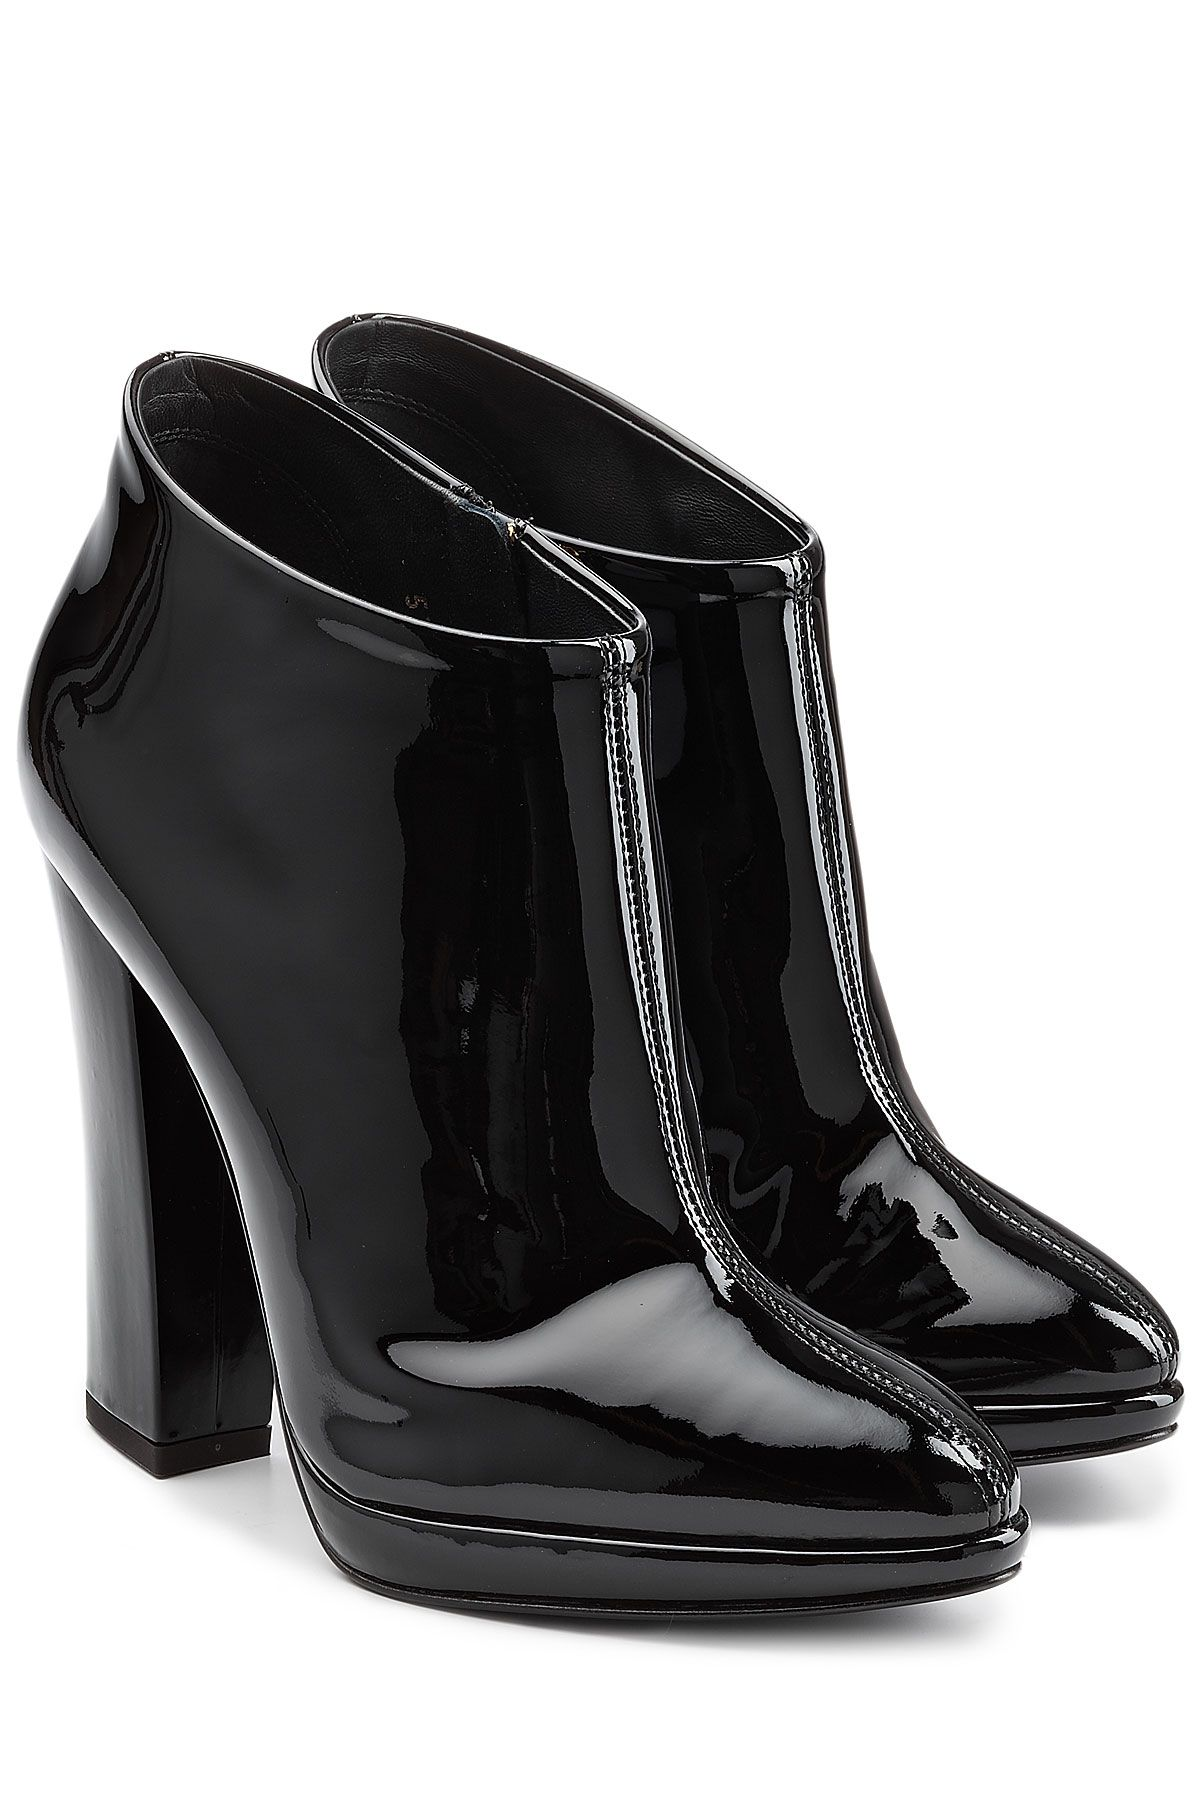 Giuseppe Zanotti Patent Leather Ankle Boots free shipping supply brand new unisex sale online new styles cheap online cheap 2015 outlet big sale a2XAjwP